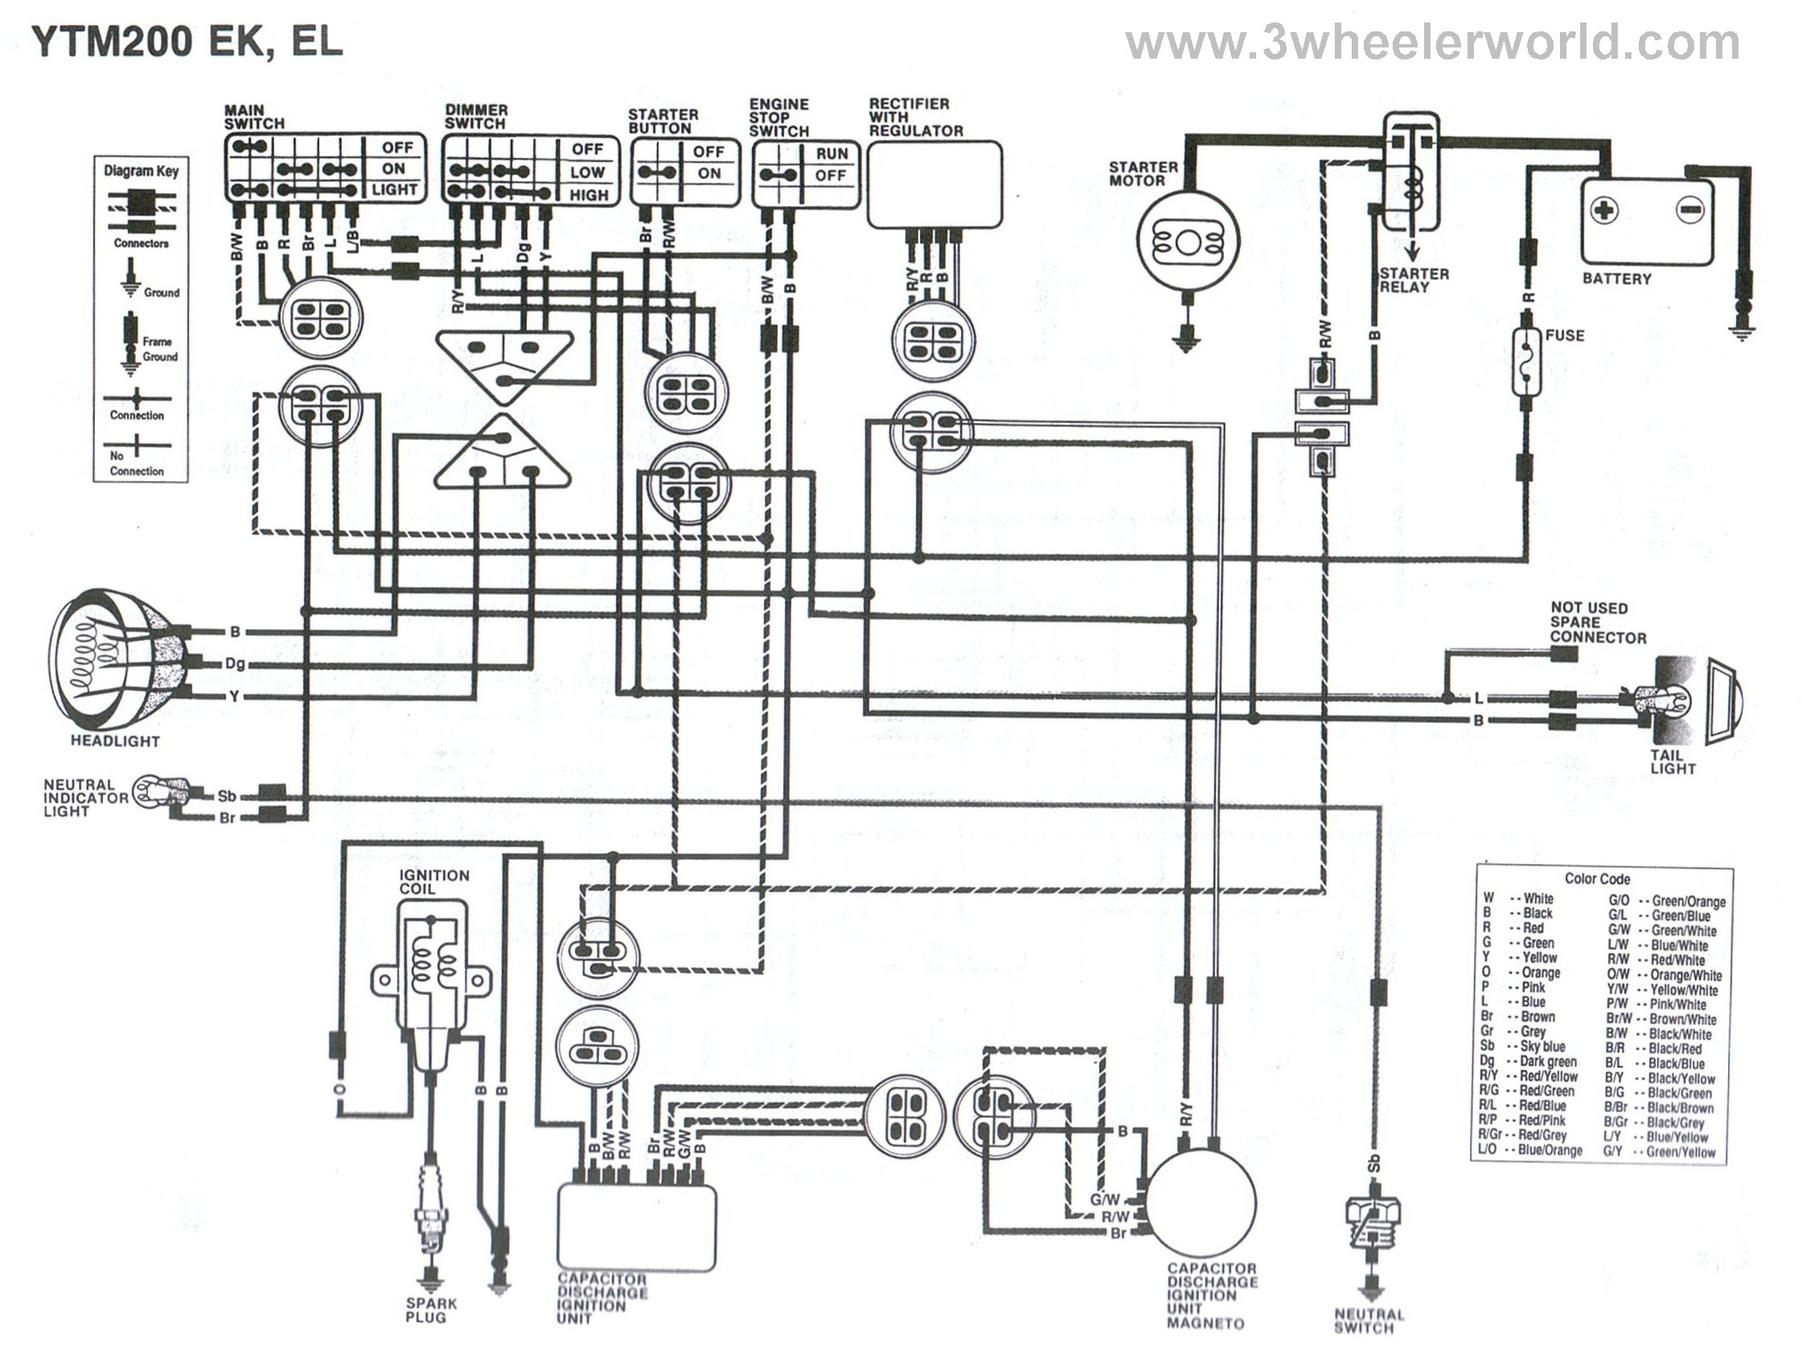 attachment Timberwolf Wiring Diagram on yamaha bravo, yamaha it, for parva, honda crf, yamaha ty, hp evinrude,